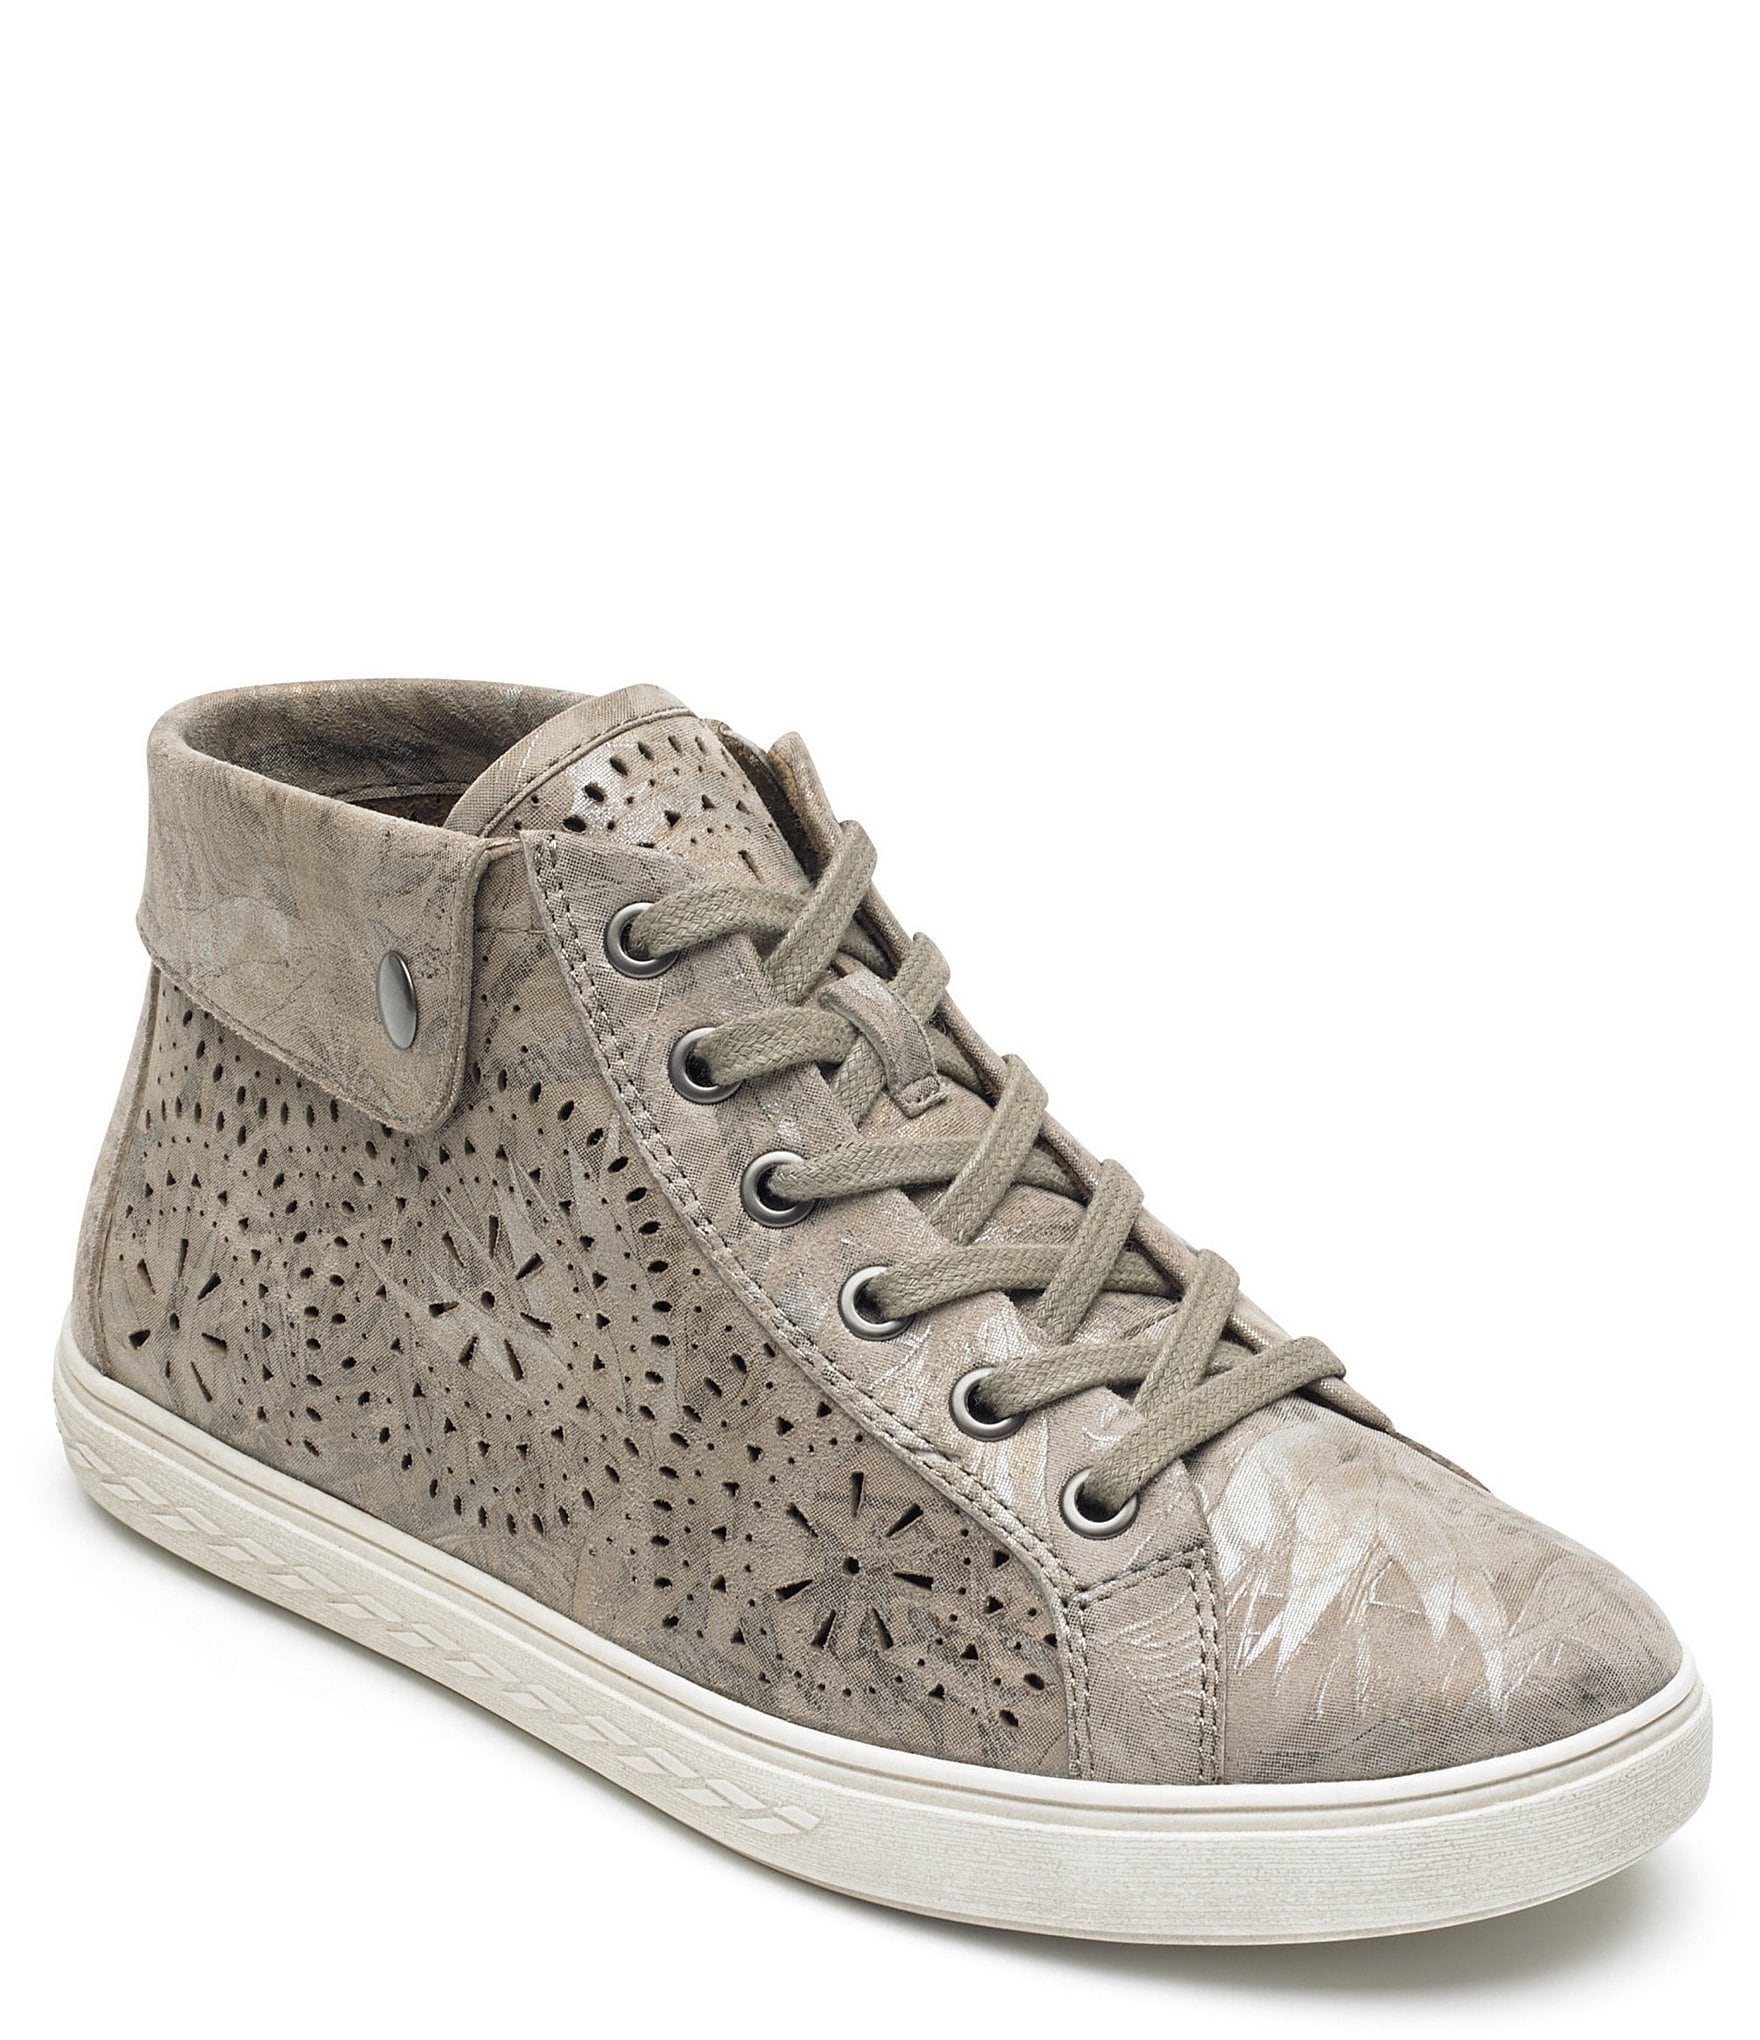 Rockport Cobb Hill Willa Leather High